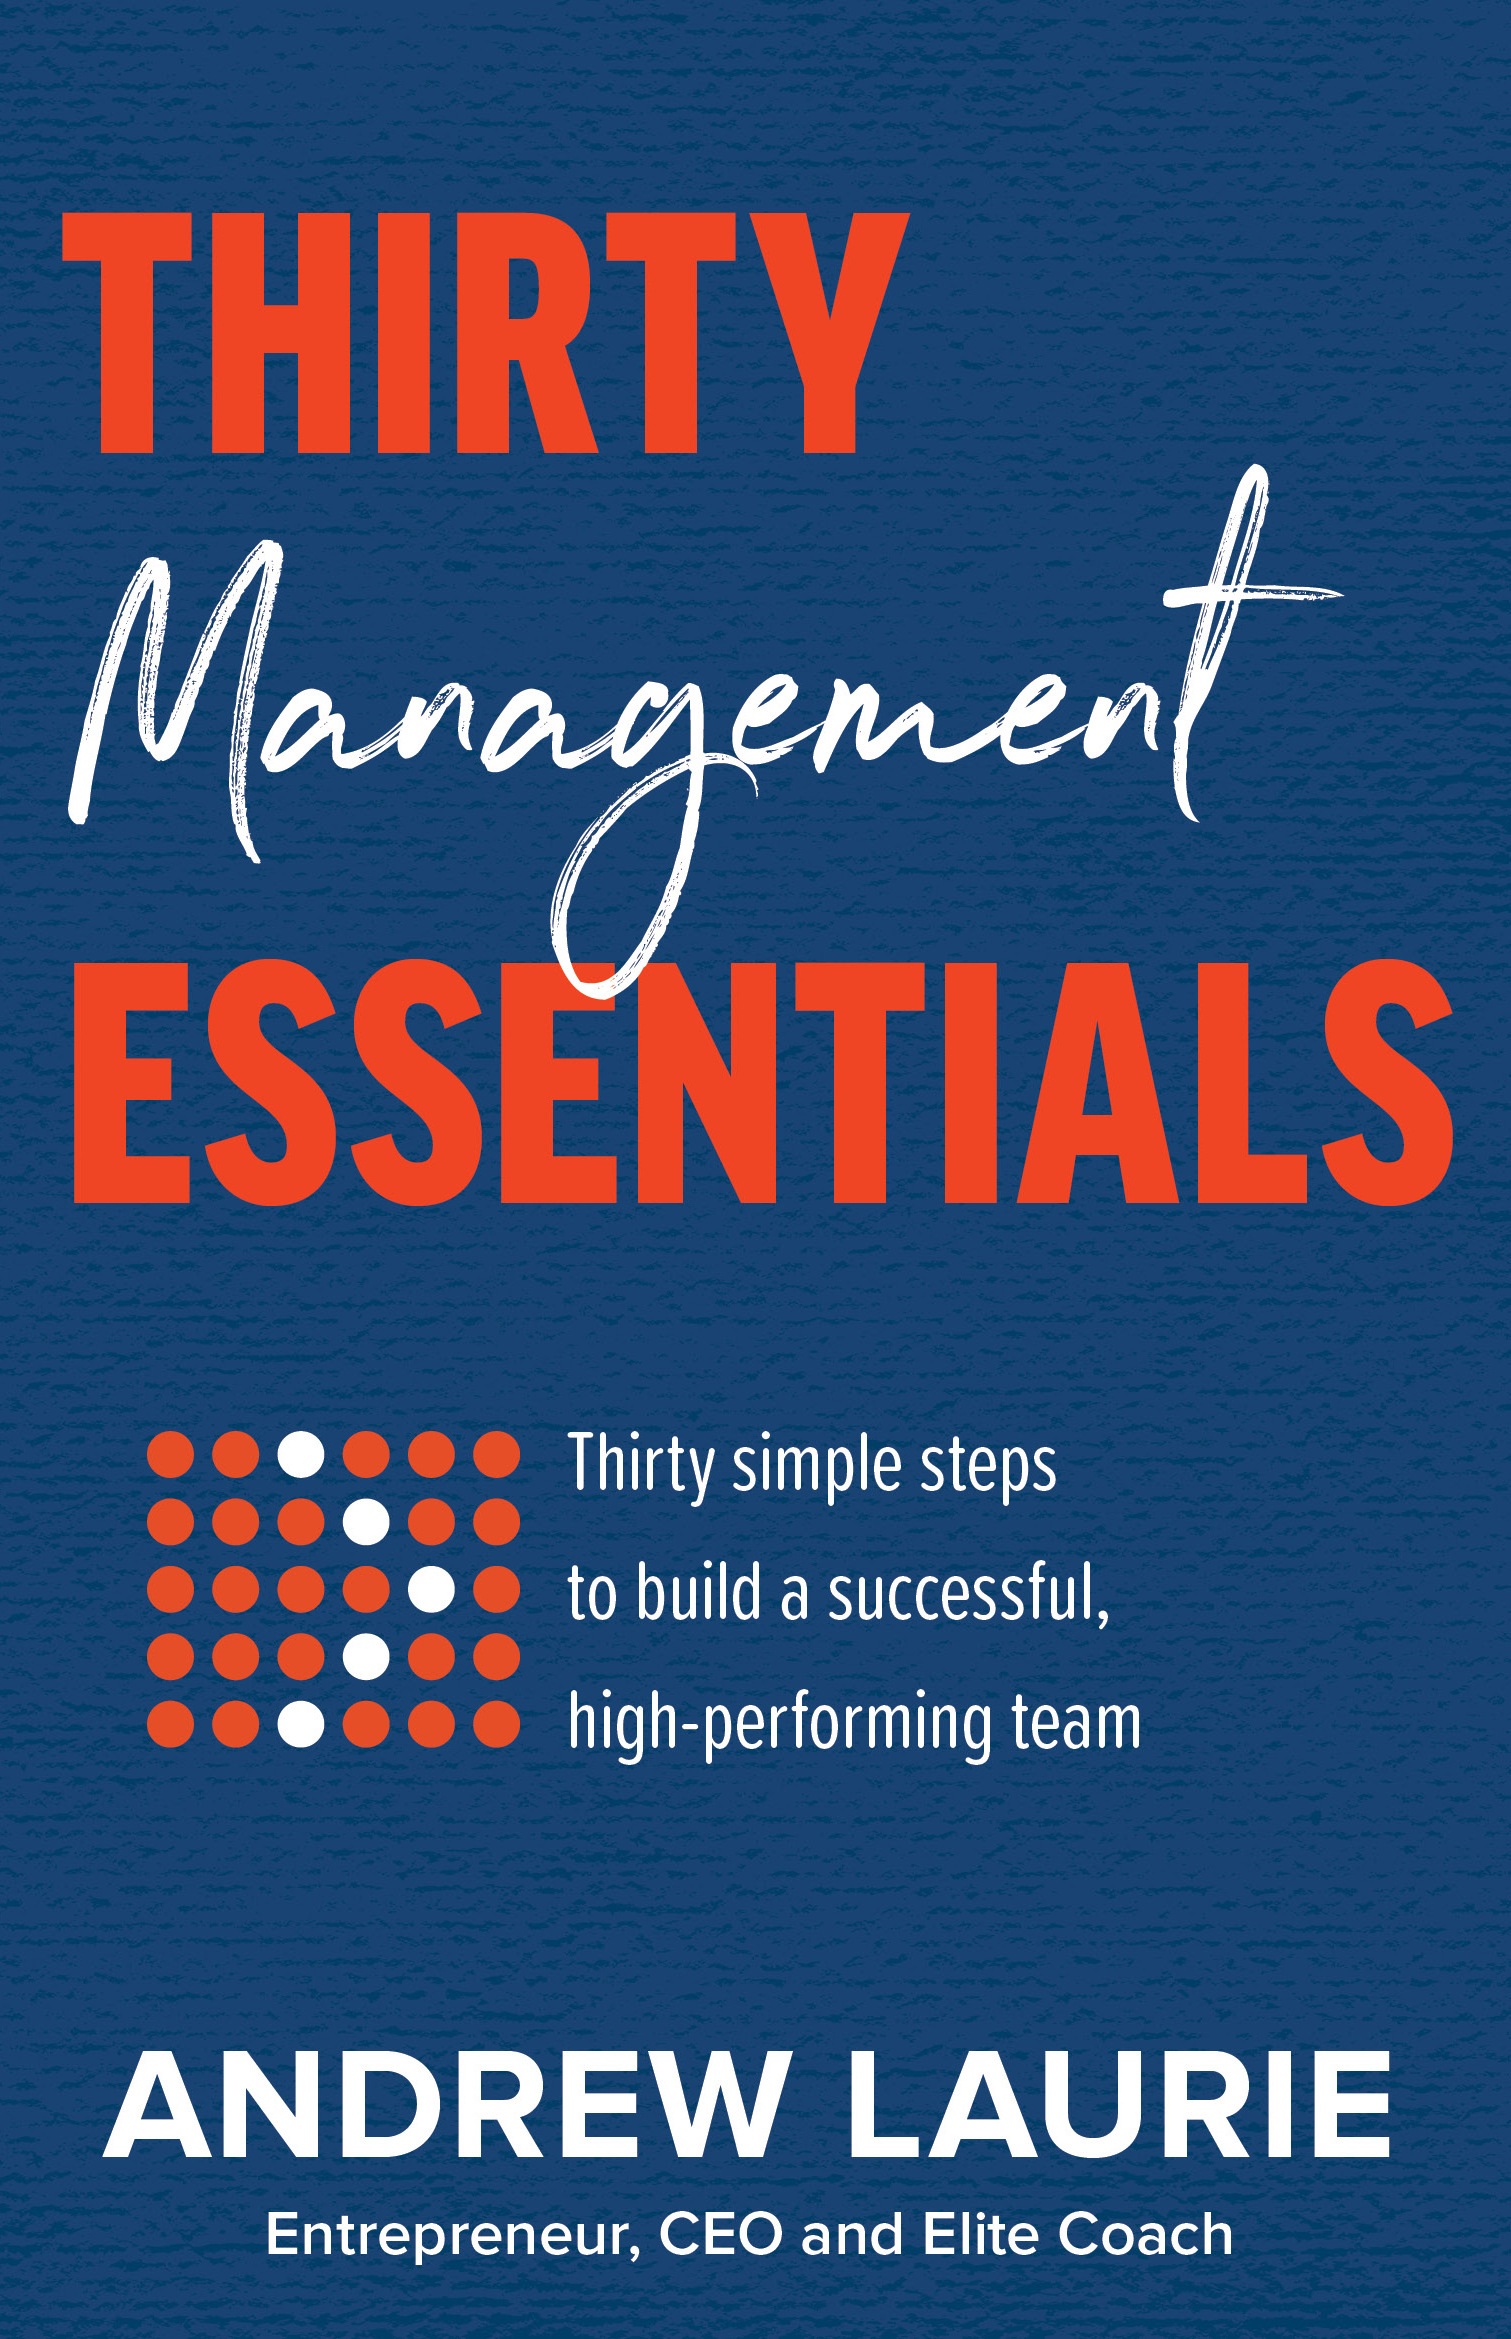 Thirty Essentials Management.jpg